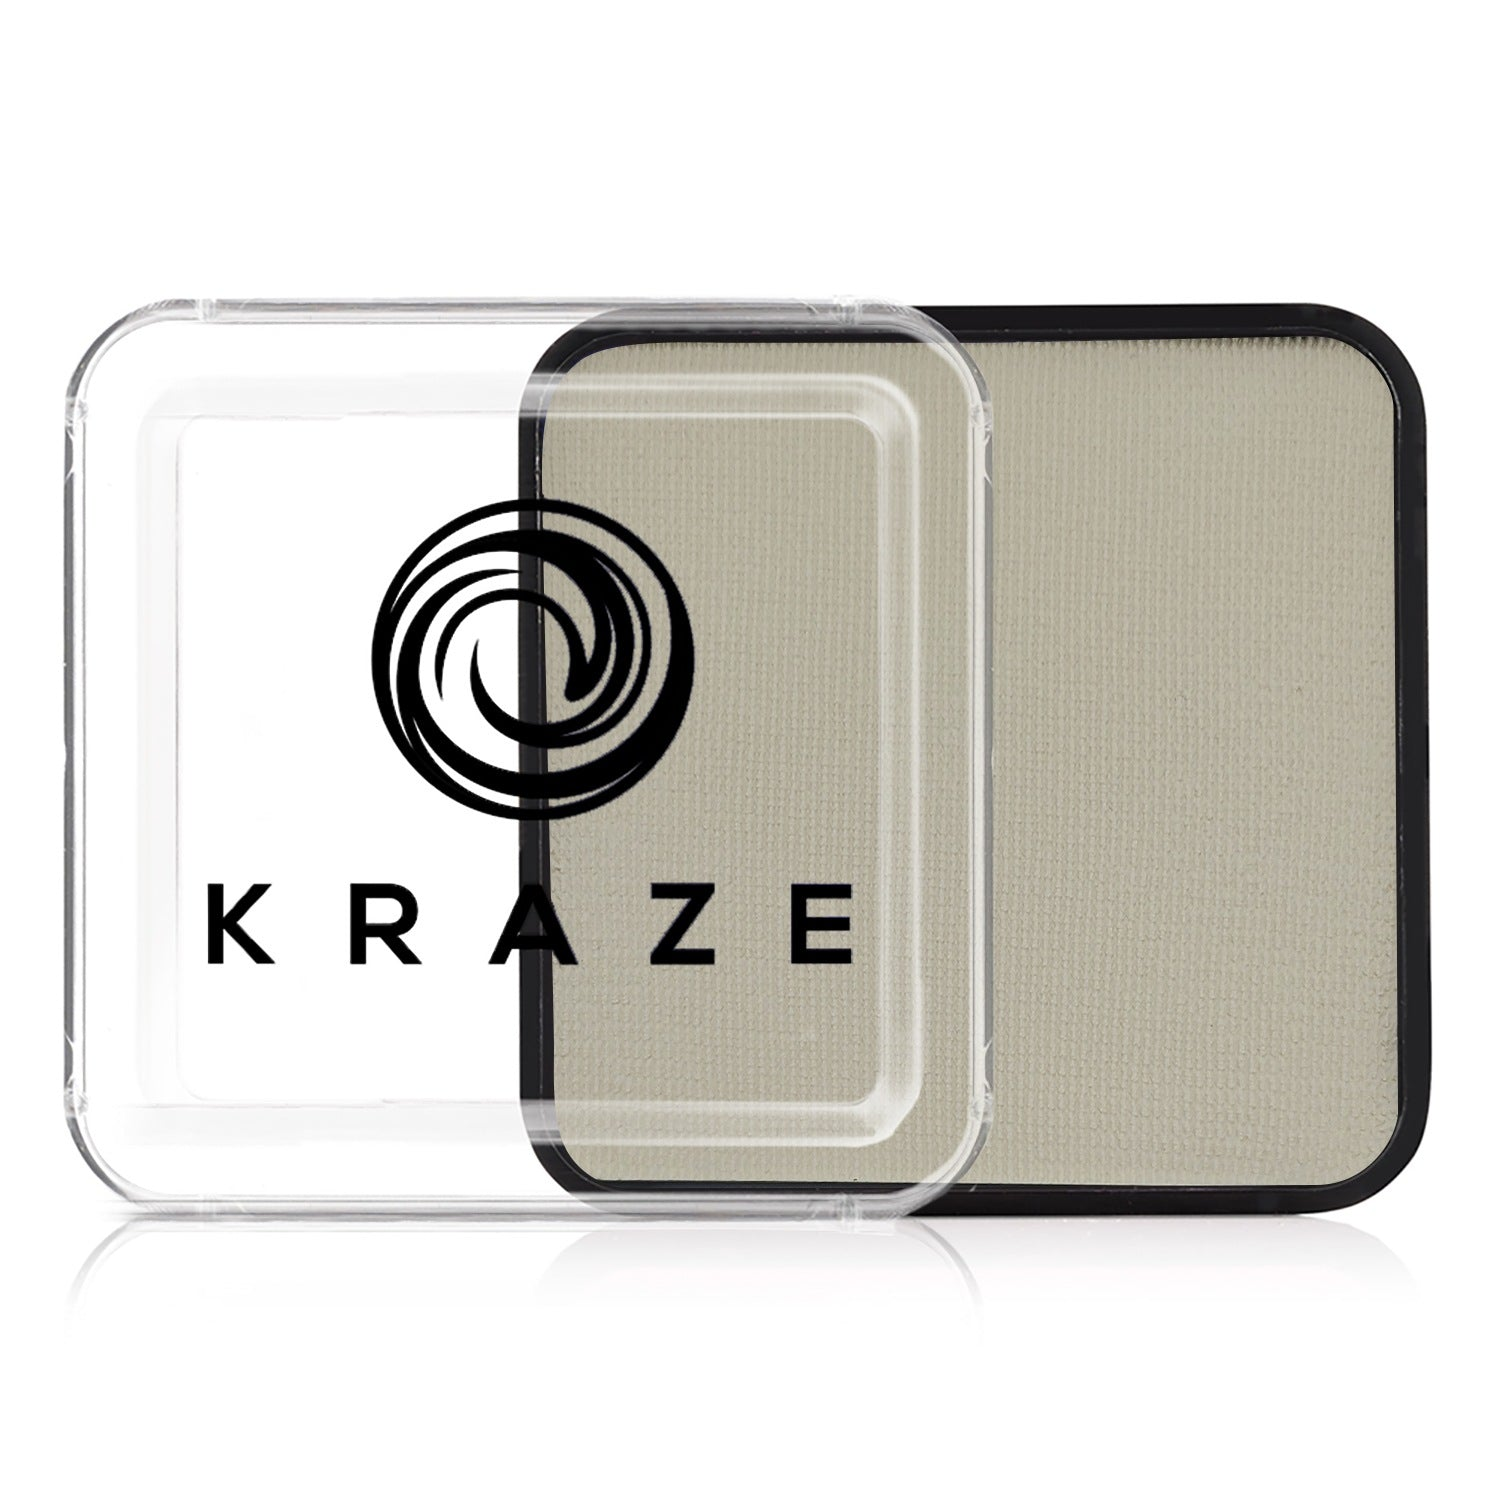 Kraze FX Square Paint - 25 gm - Neon White